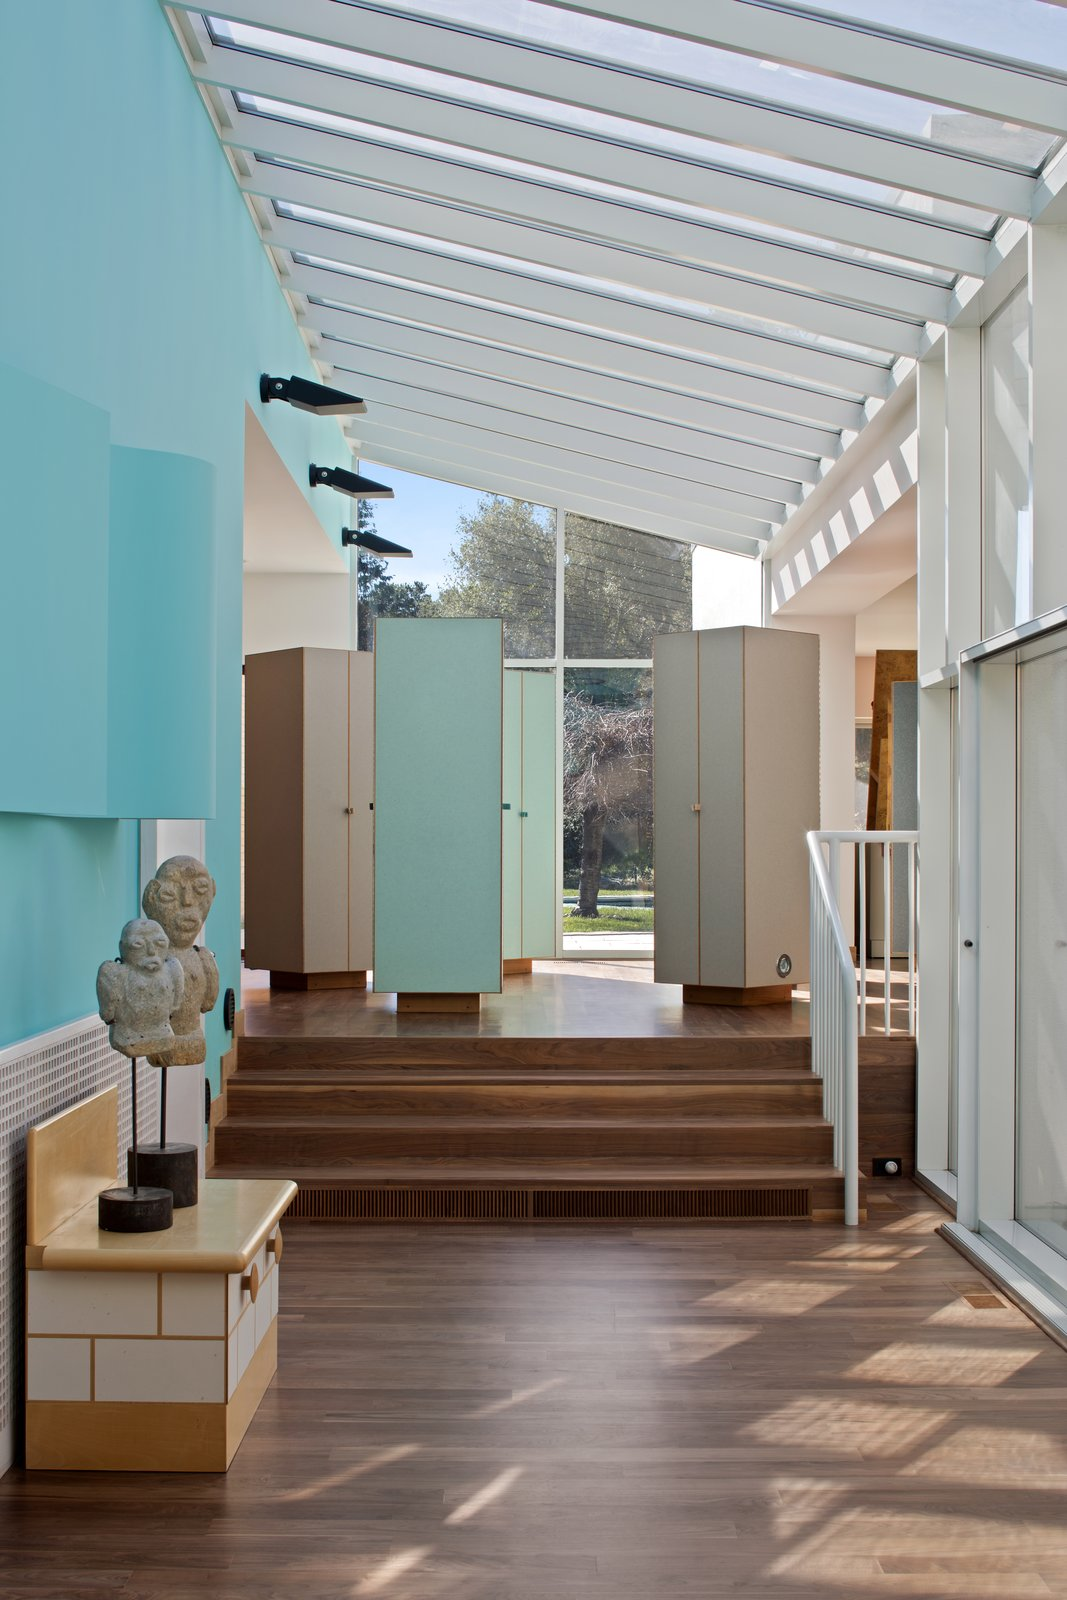 A glass atrium holds together four of the six pavilions that make up the home. Sottsass considered hallways to be unimaginative, preferring to create a flexible village of connected spaces.  Photo 2 of 12 in IDEO Founder David Kelley Asks $13.5M For His Ettore Sottsass-Designed Masterpiece